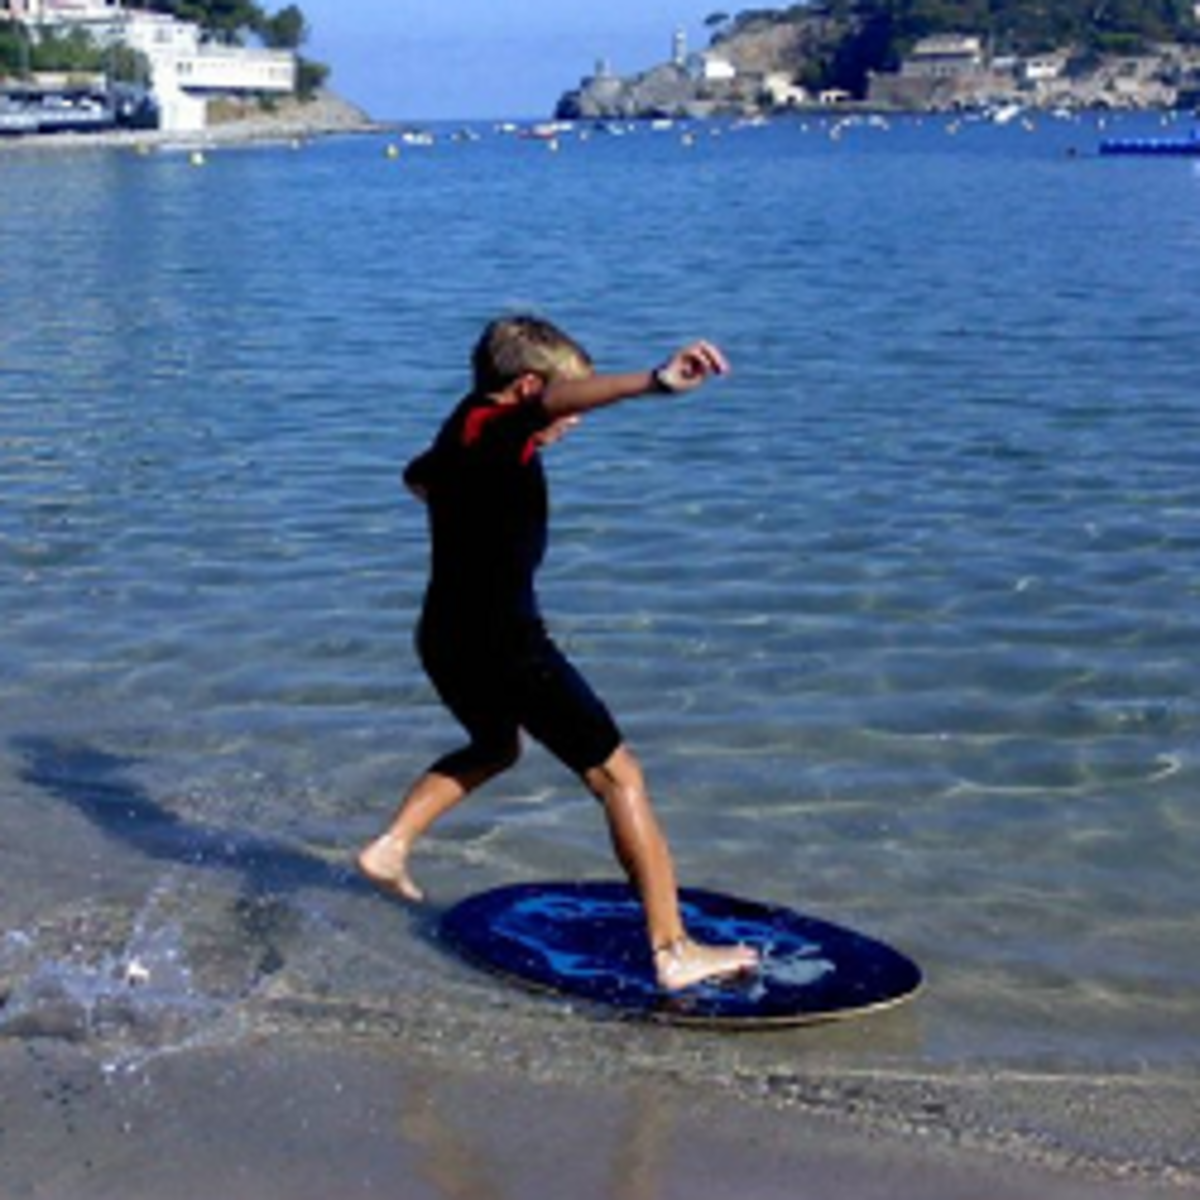 My son skimboarding in Mallorca